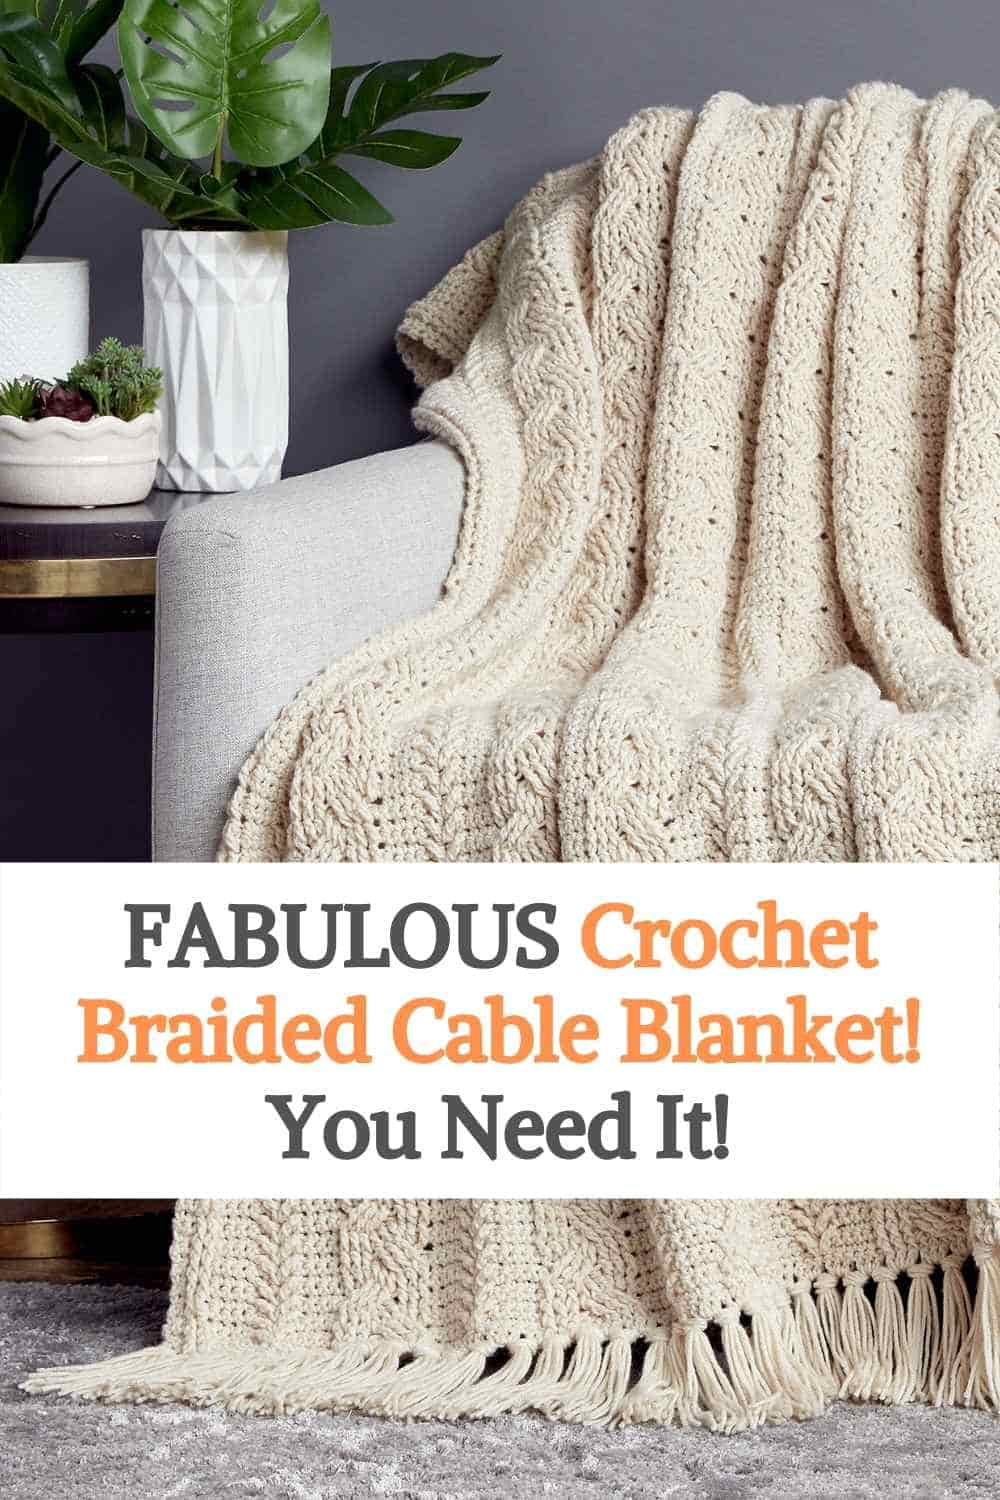 Crochet Braided Cable Blanket